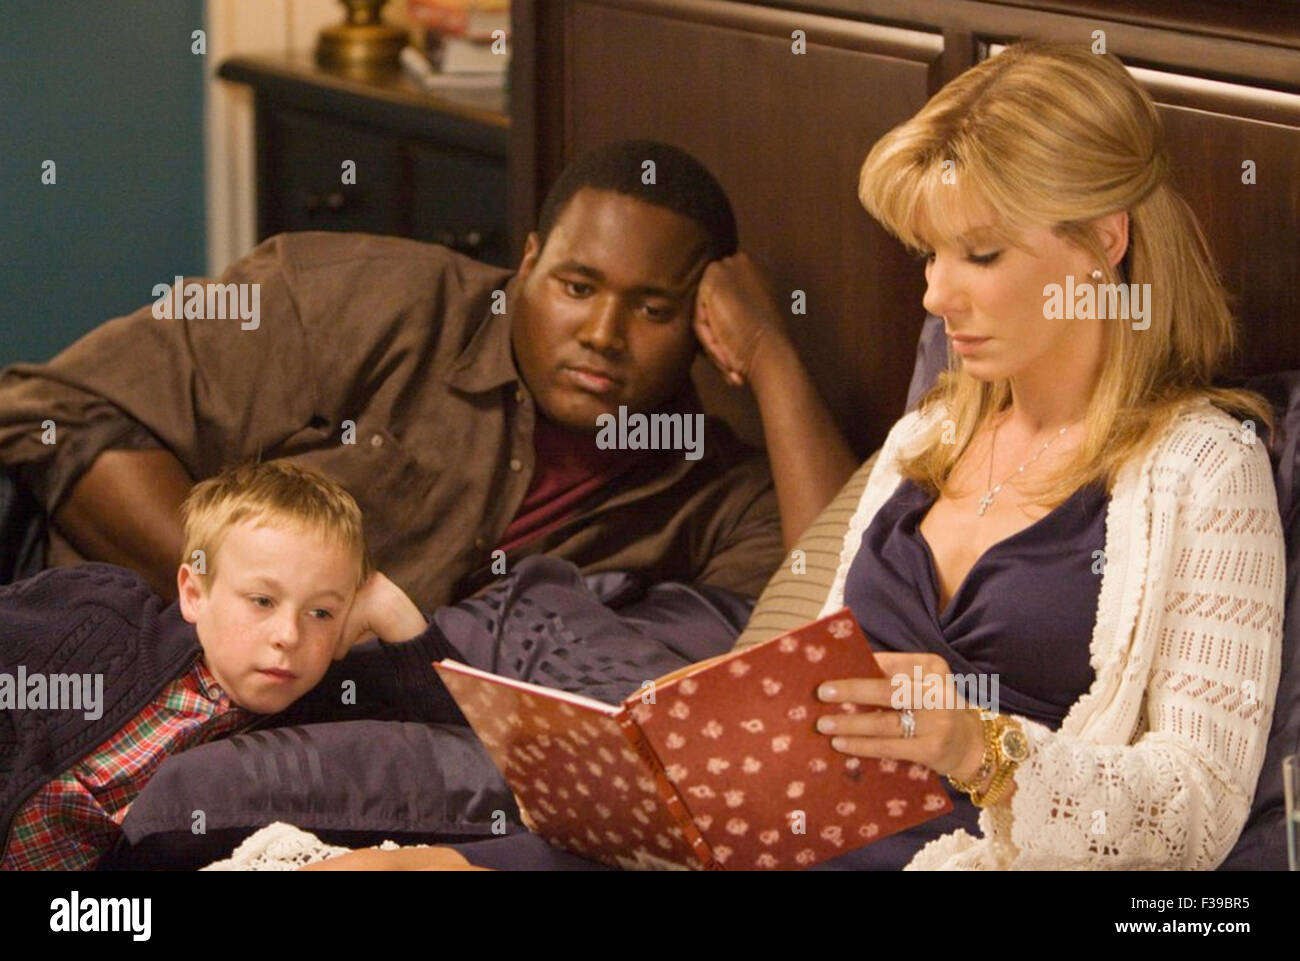 THE BLIND SIDE 2009  Alcon Entertainment film with from left Jae Head, Quinton Aaron, Sandra Bullock - Stock Image